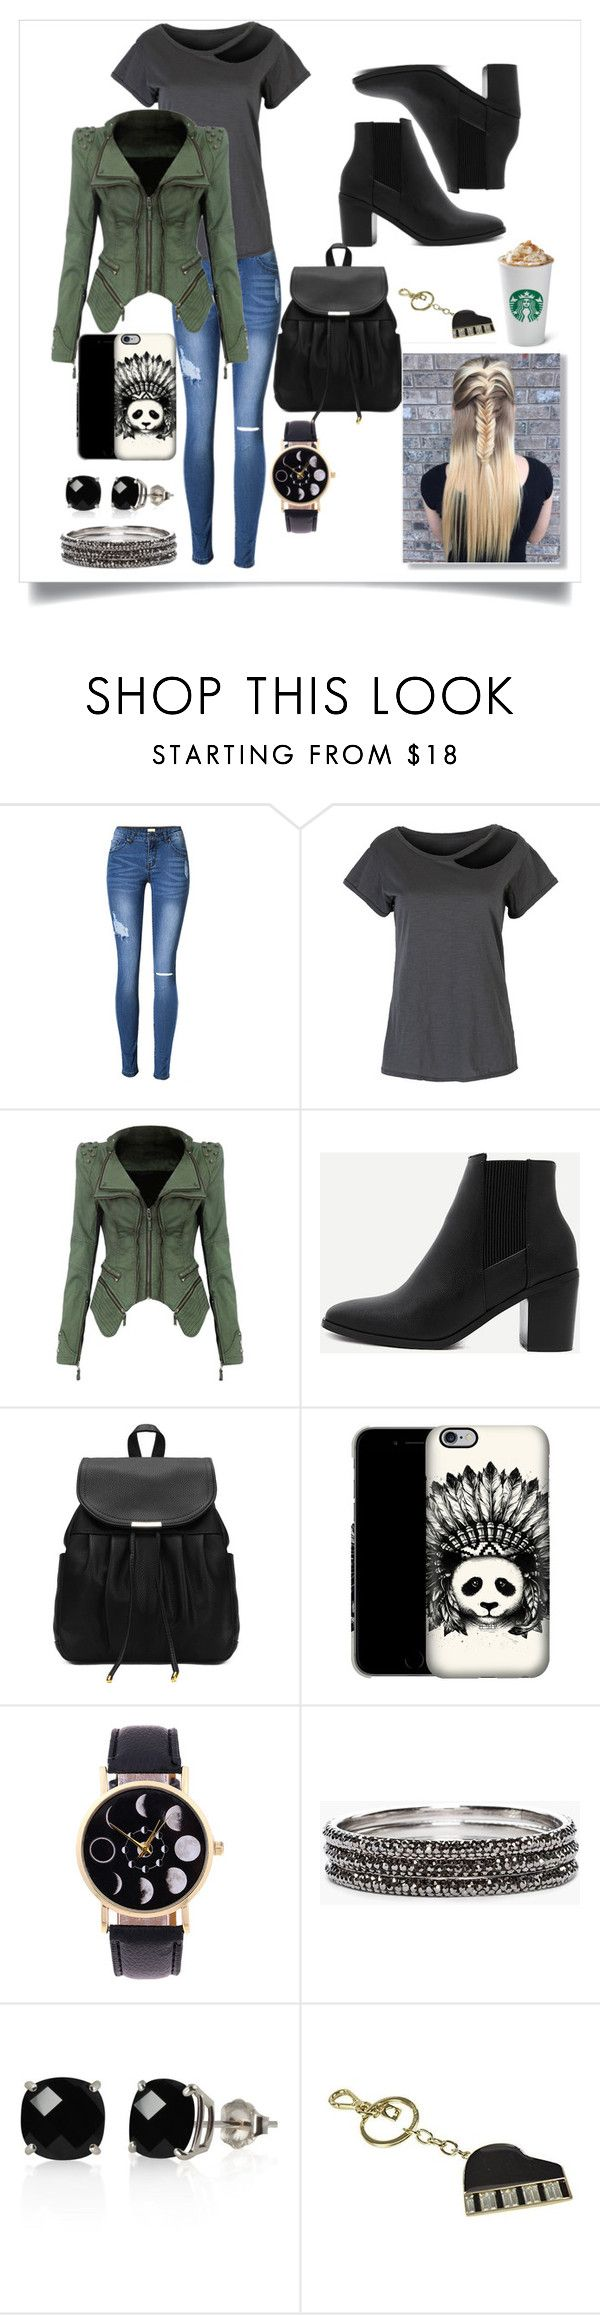 """""""Today's Outfit"""" by iz-so-kray-kray ❤ liked on Polyvore featuring WithChic, Chico's, Belk & Co. and Kate Spade"""